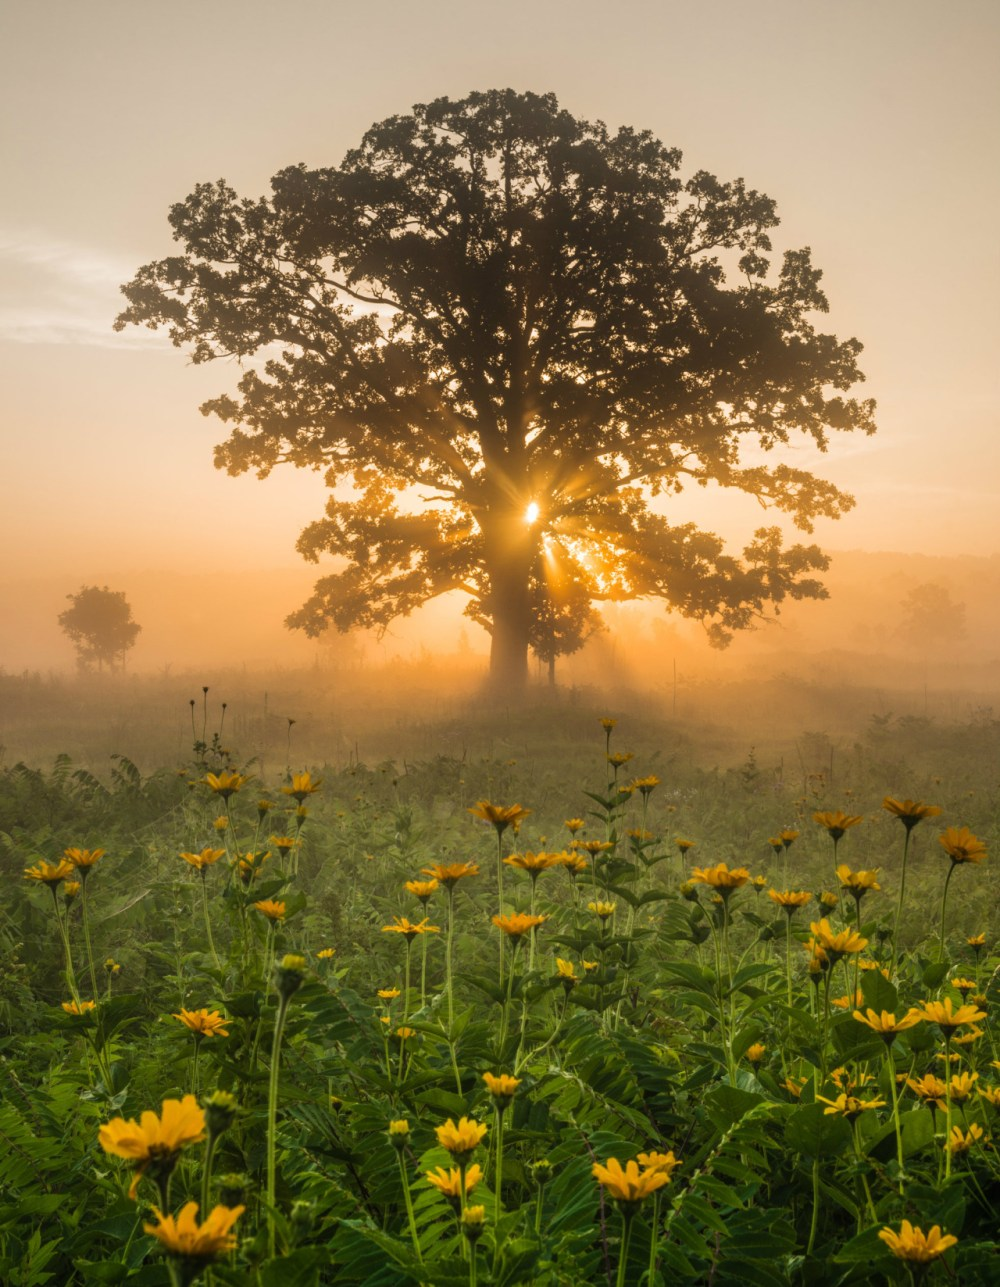 A brilliant summer sun rises over Minnesota Valley National Wildlife Refuge, shining golden light through the limbs of an old burl oak and burning away the morning fog. The refuge runs for almost 70 miles along the Minnesota River, providing visitors a unique opportunity to enjoy wildlife observation and recreation in the shadows of skyscrapers, grain elevators and towering trees. Photo by Erik Fremstad. Posted on Tumblr by the US Department of the Interior, 8/19/16.